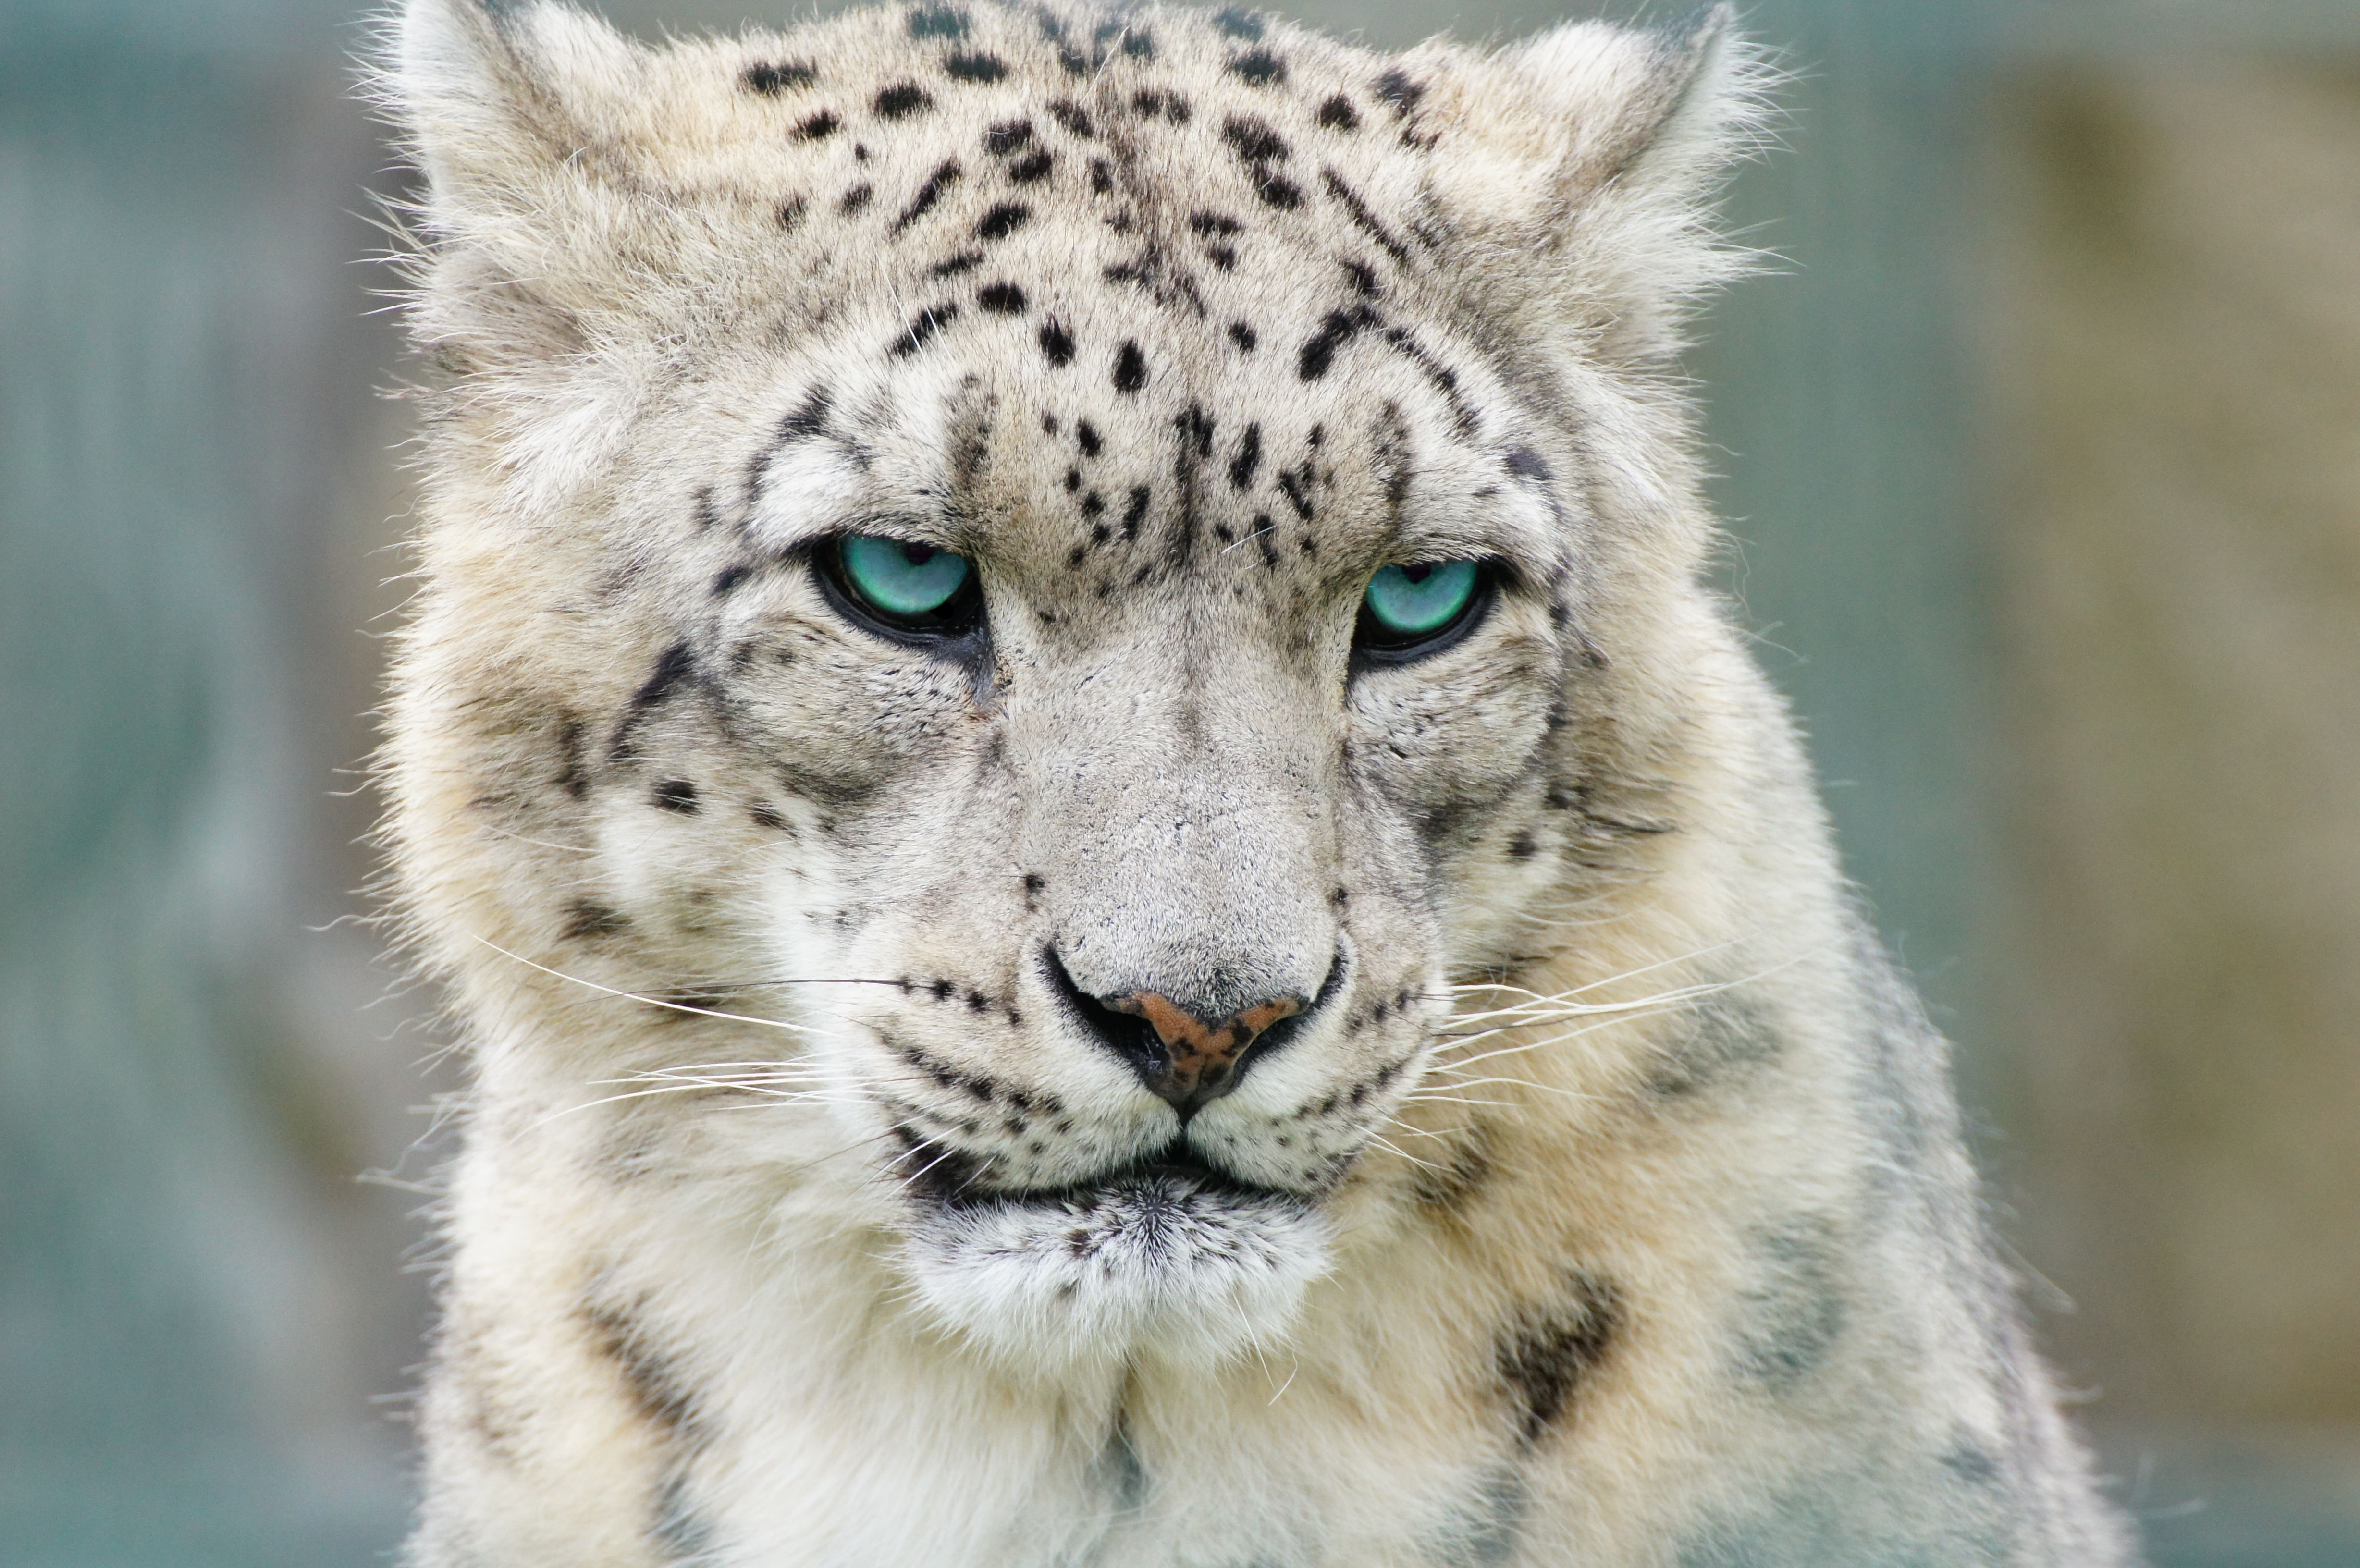 The Prey Of The Snow Leopard Have Been Decreasing From High